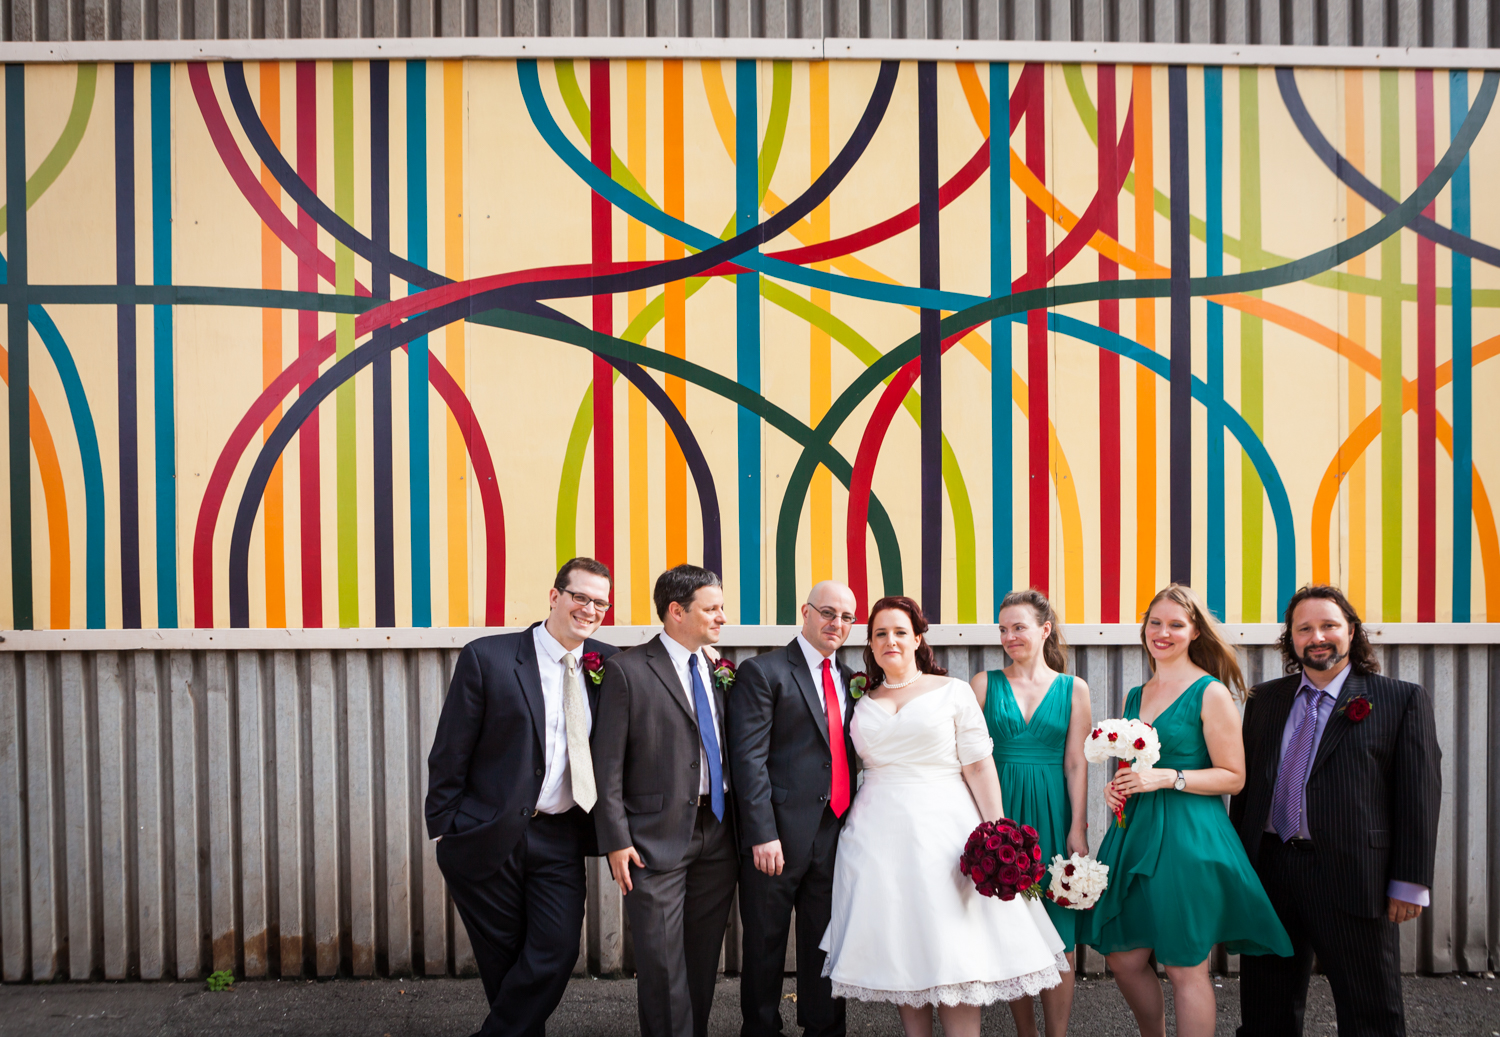 Bridal party standing in front of DUMBO mural